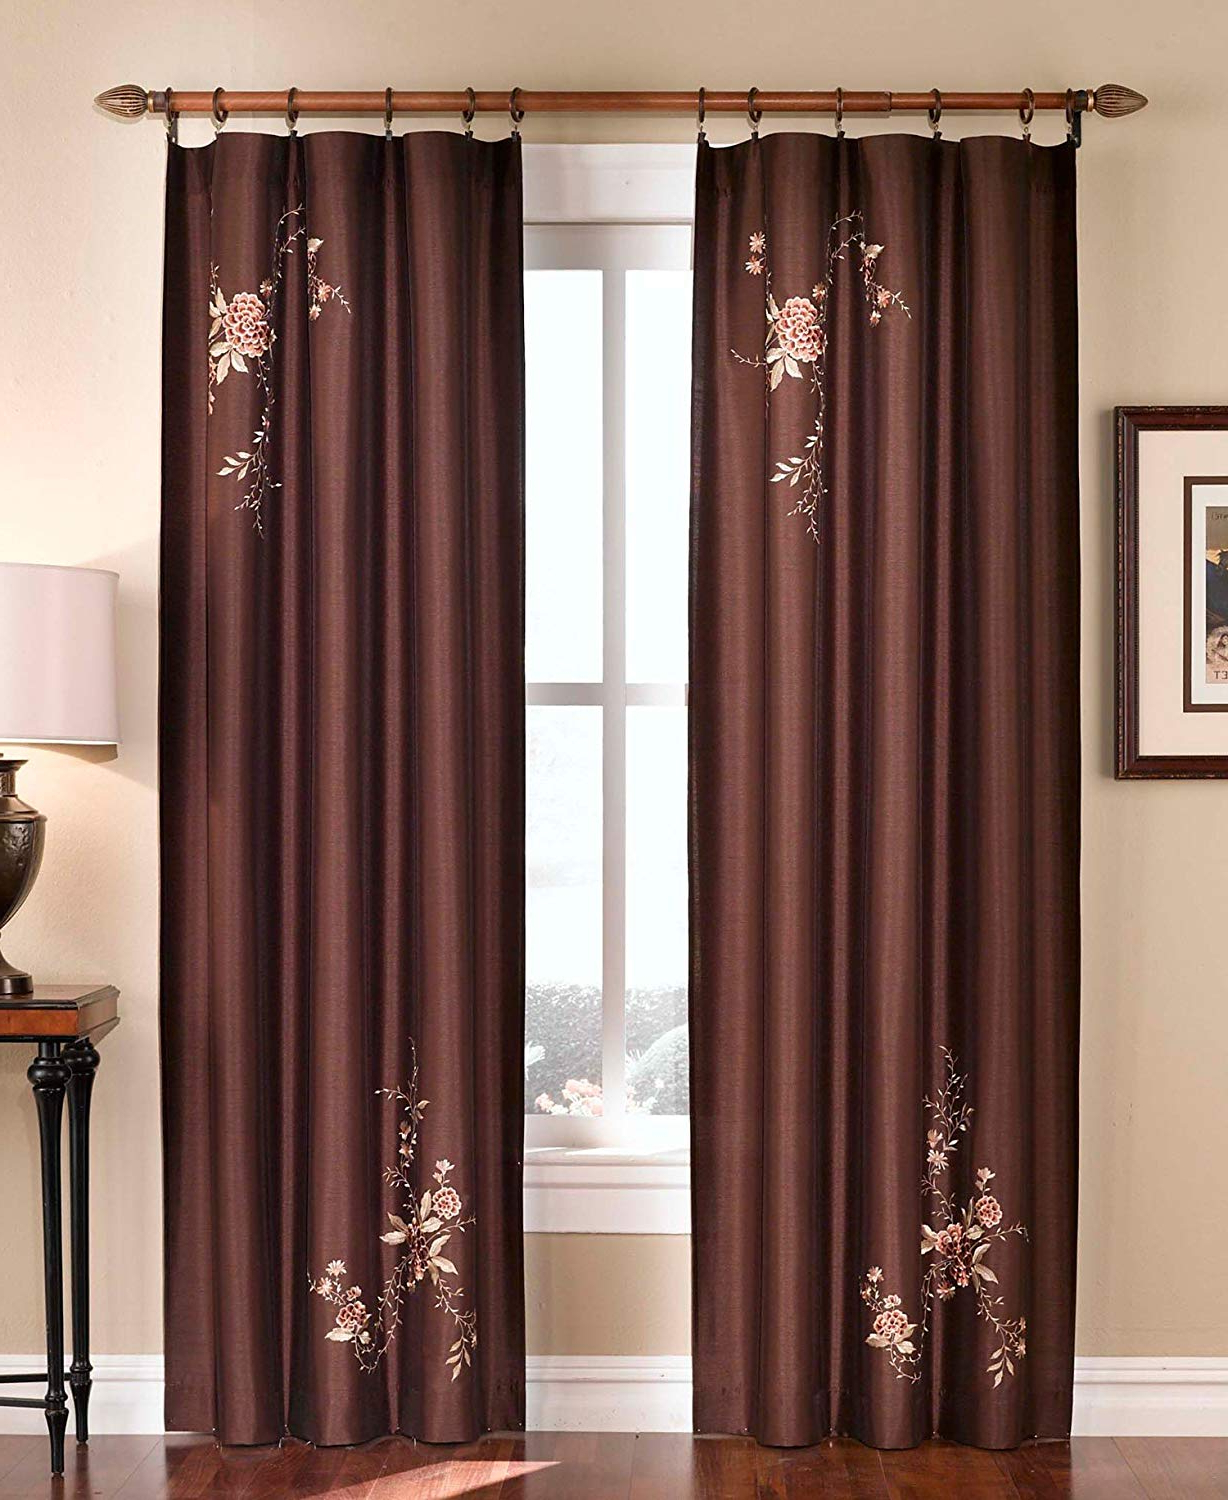 Ofloral Embroidered Faux Silk Window Curtain Panels With Regard To Favorite Chf Industries Floral Embroidered Faux Silk Window Curtain Drapery In Rich Colors – 95 In (View 2 of 20)